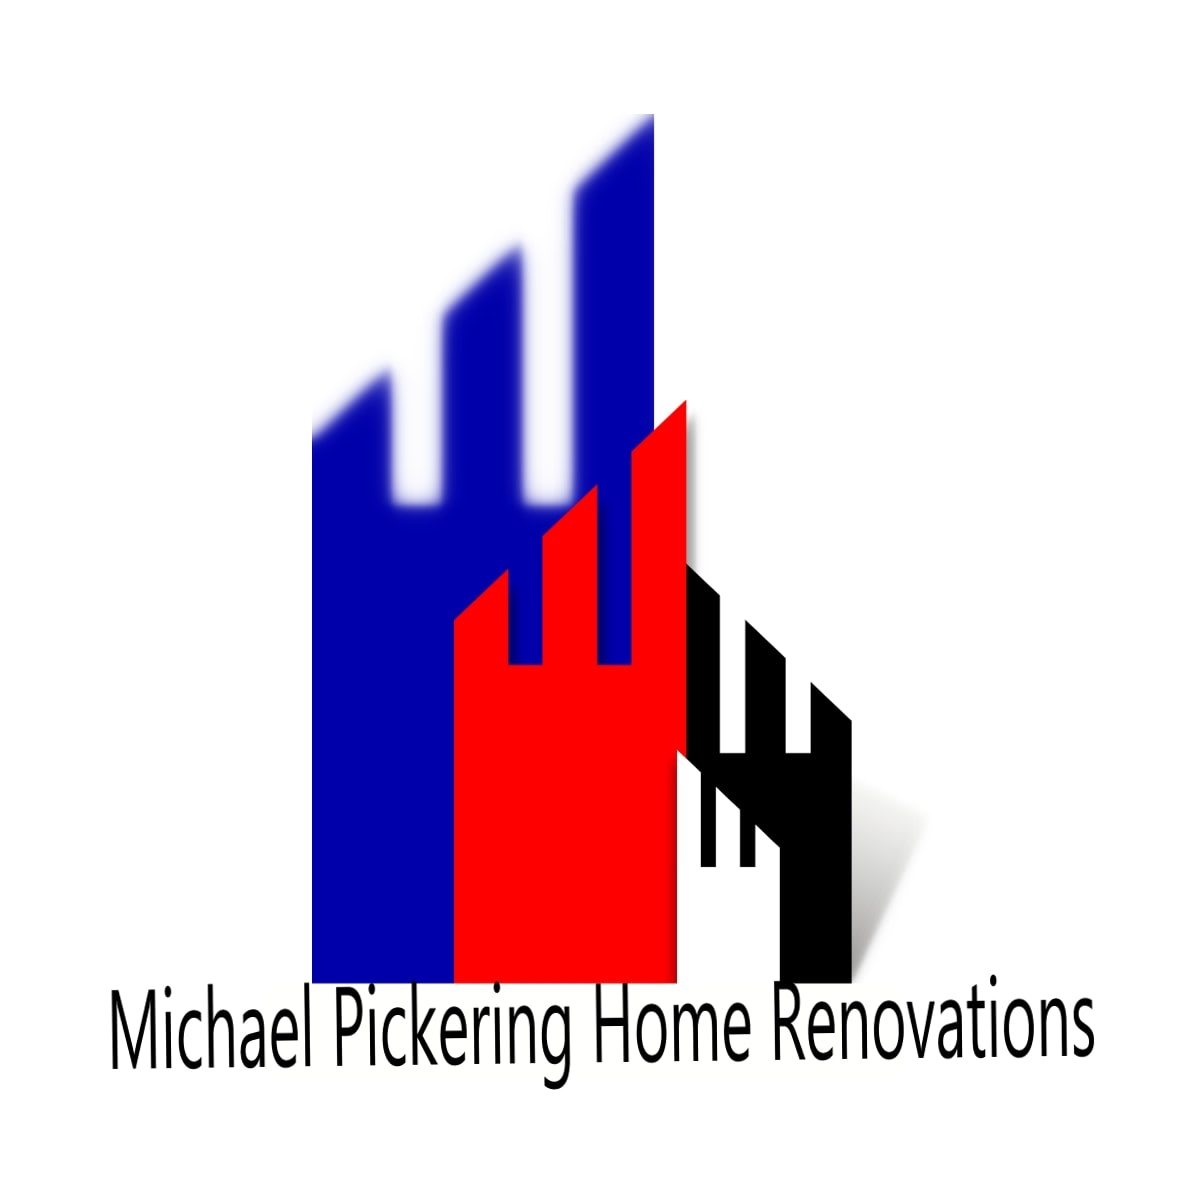 Michael Pickering Home Renovations